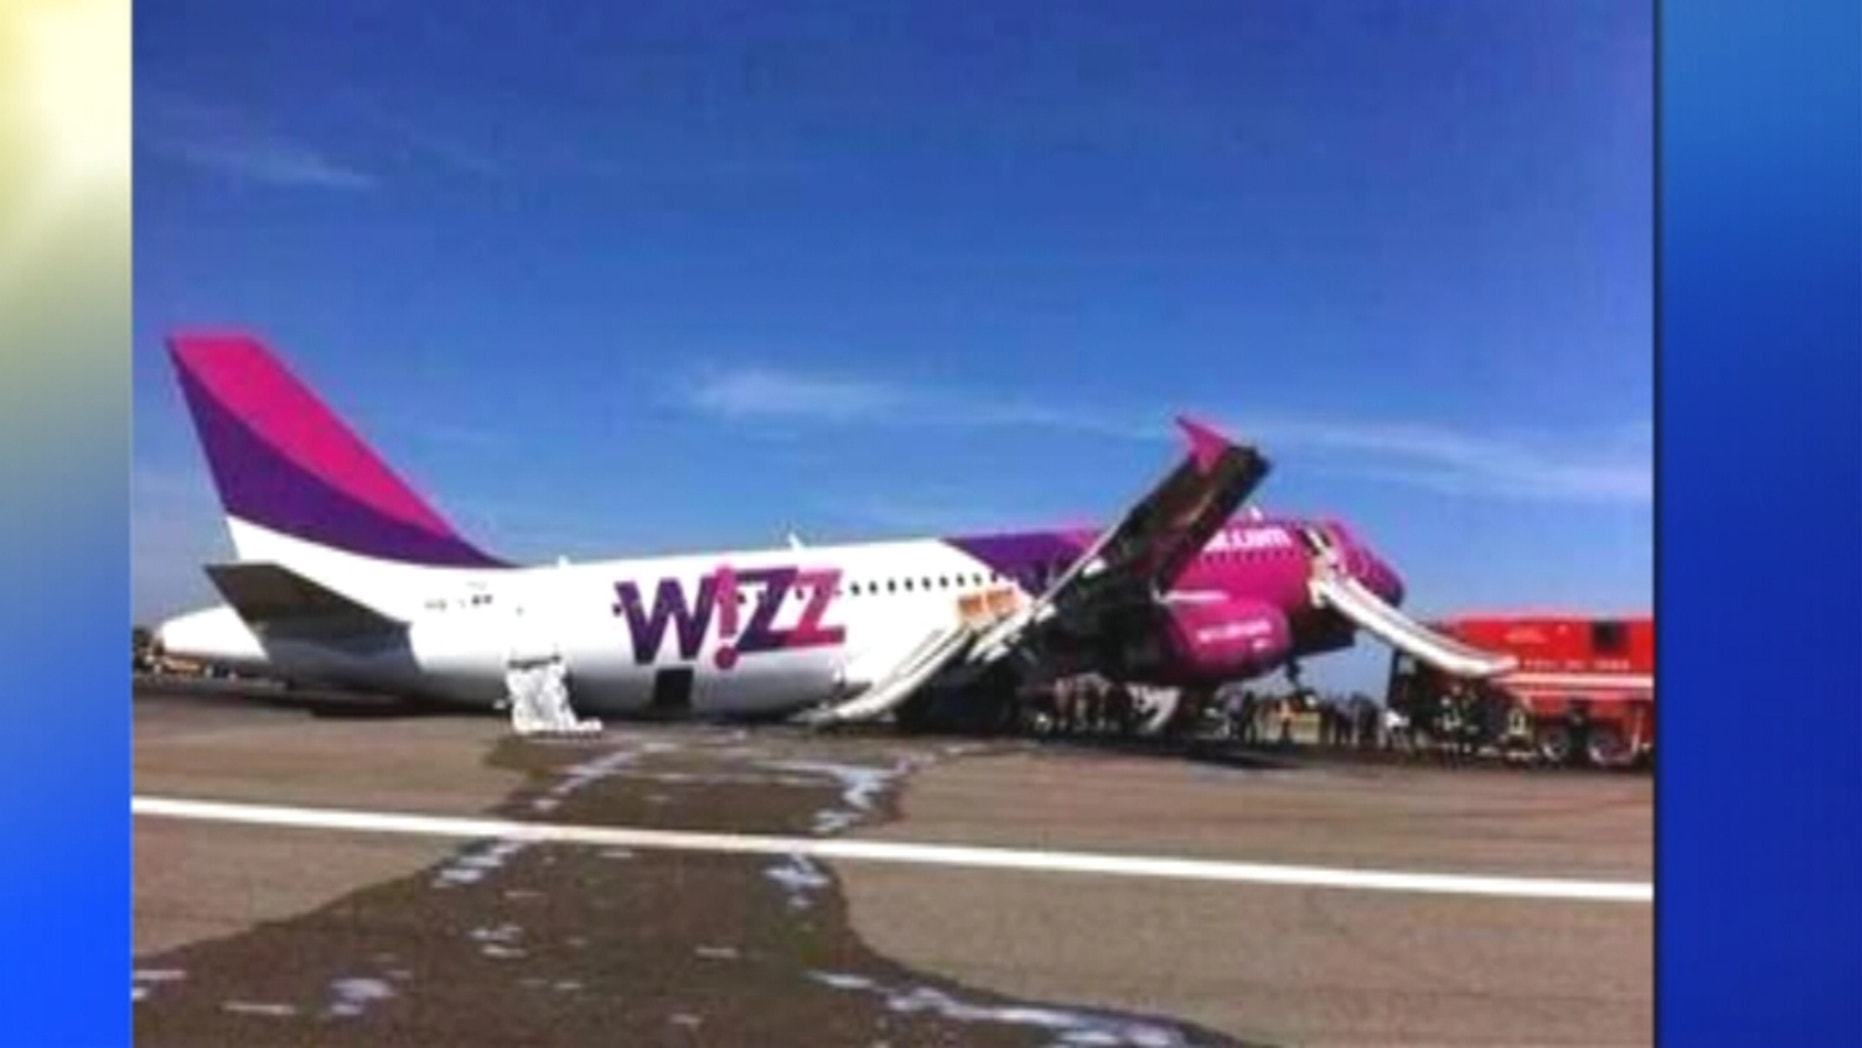 Officials at Rome's Leonardo da Vinci airport says a Wizz Air jet has made a safe emergency landing there after reporting a landing gear problem.